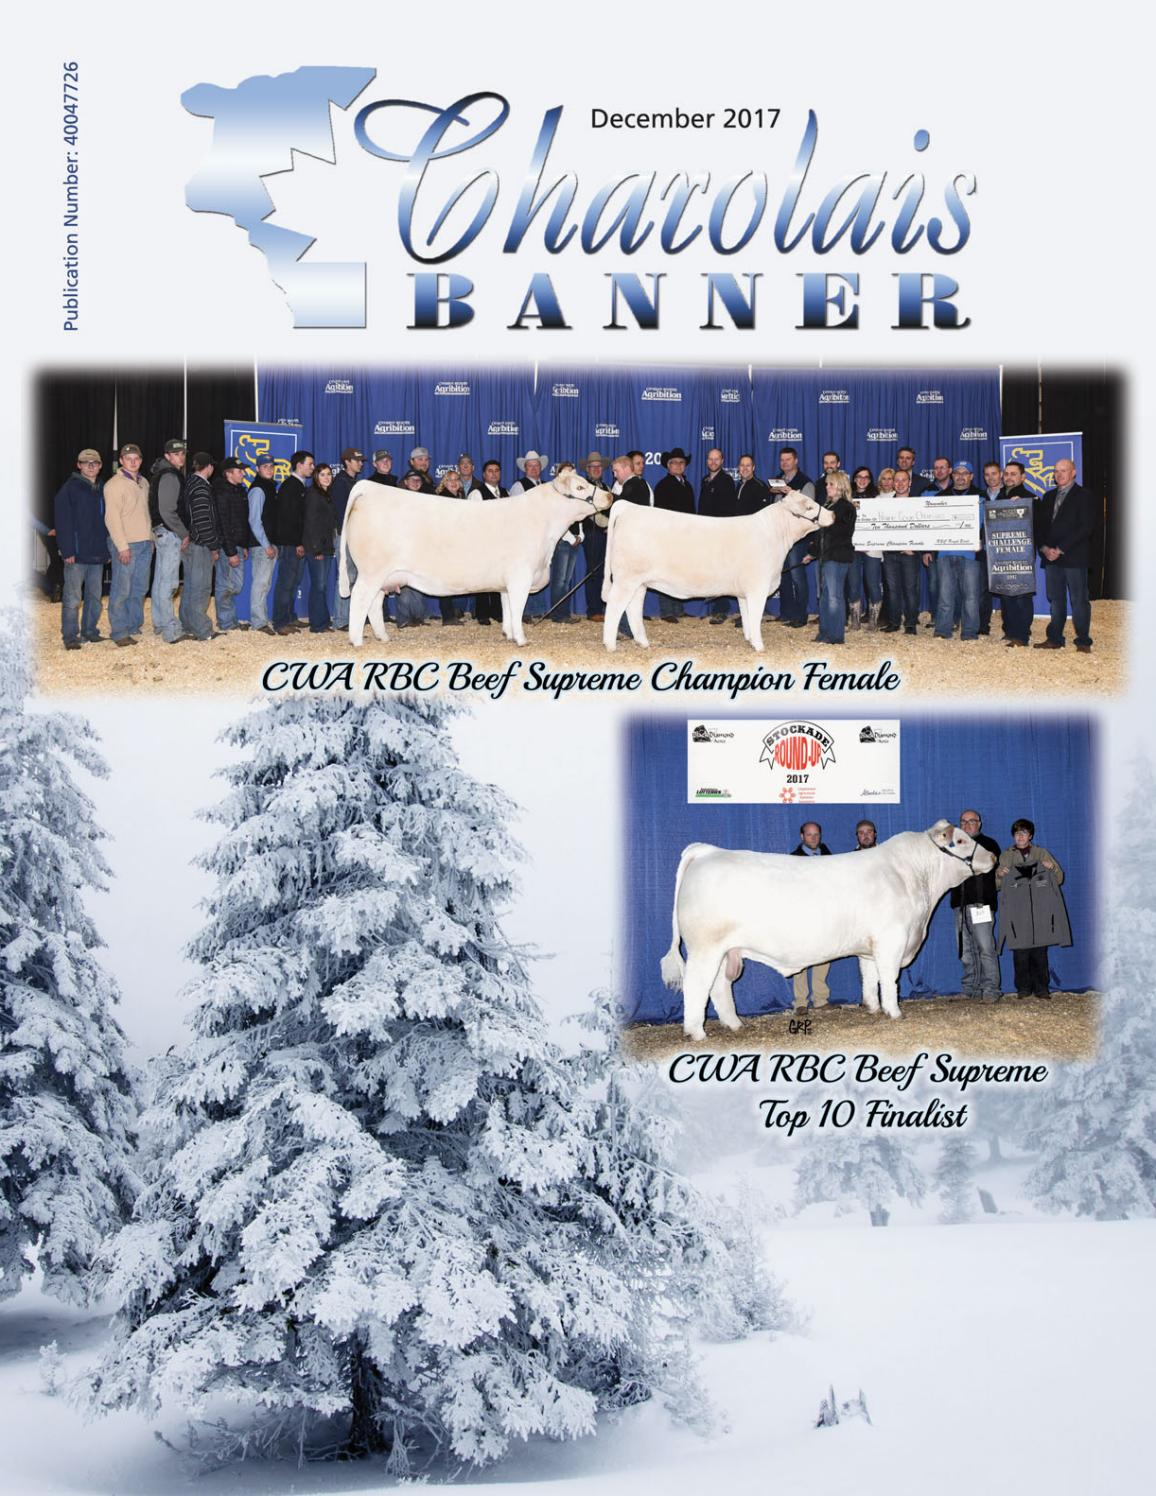 Dec 2017 charolais banner web by Charolais Banner - issuu